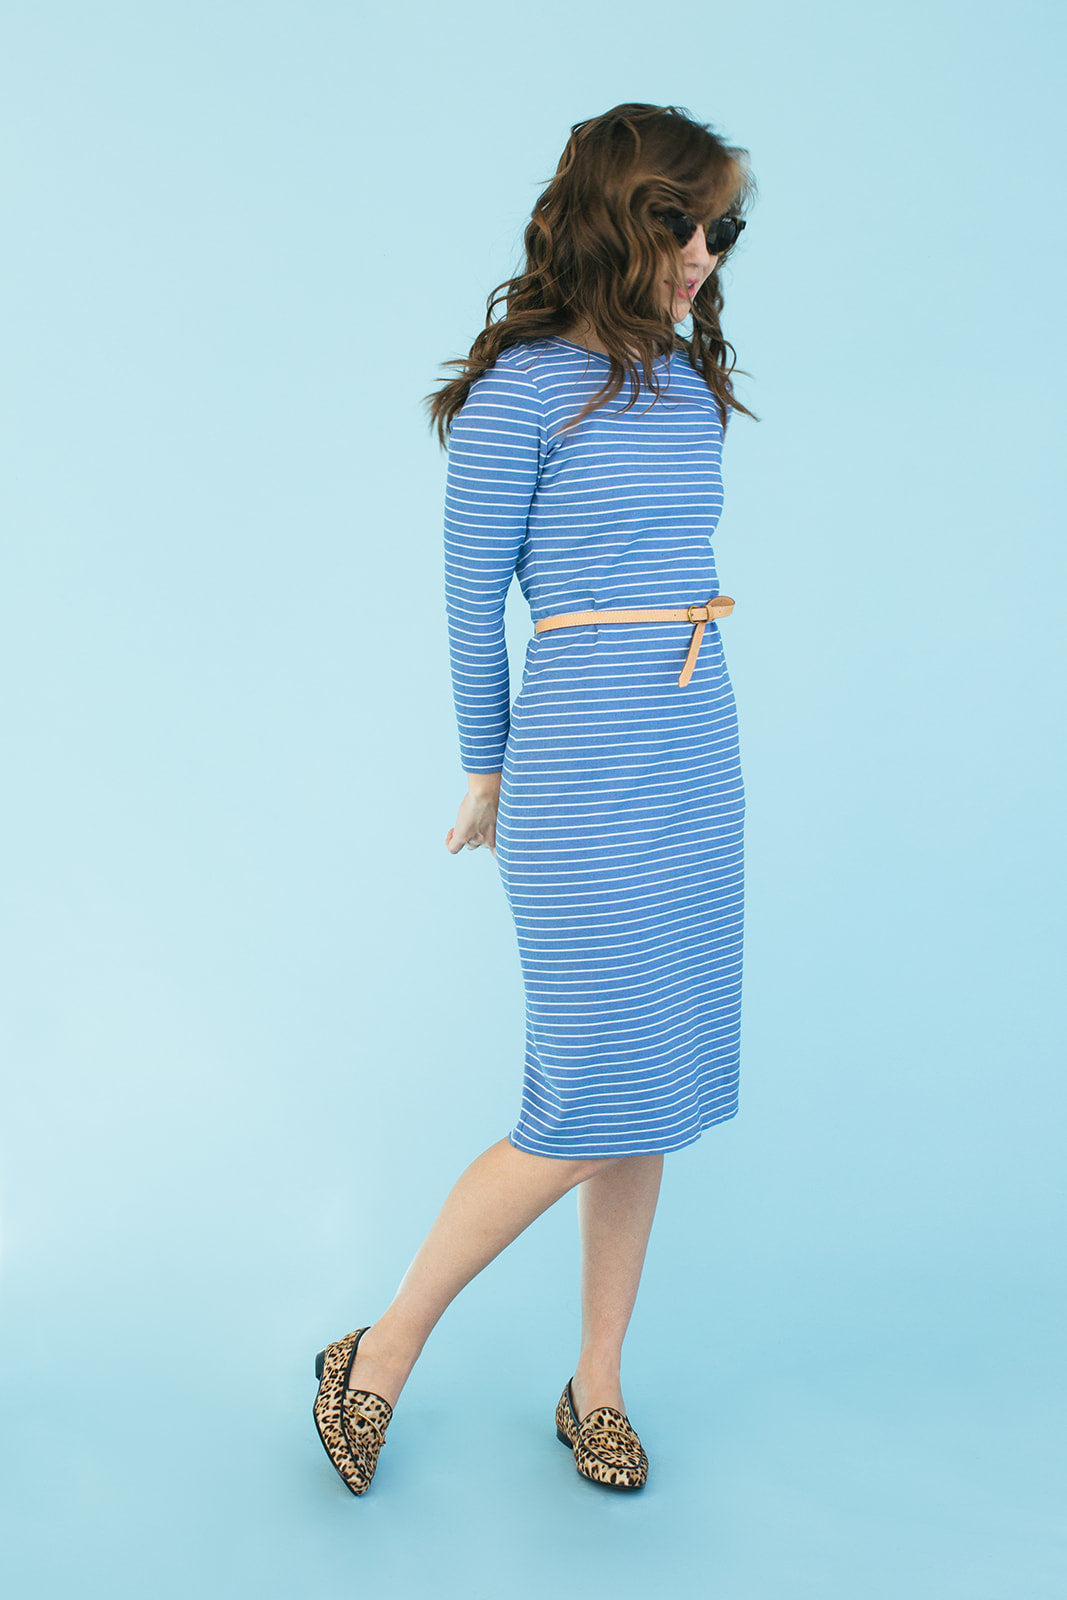 Sonnet James - REESE - BLUE STRIPE - Dress,Blue White